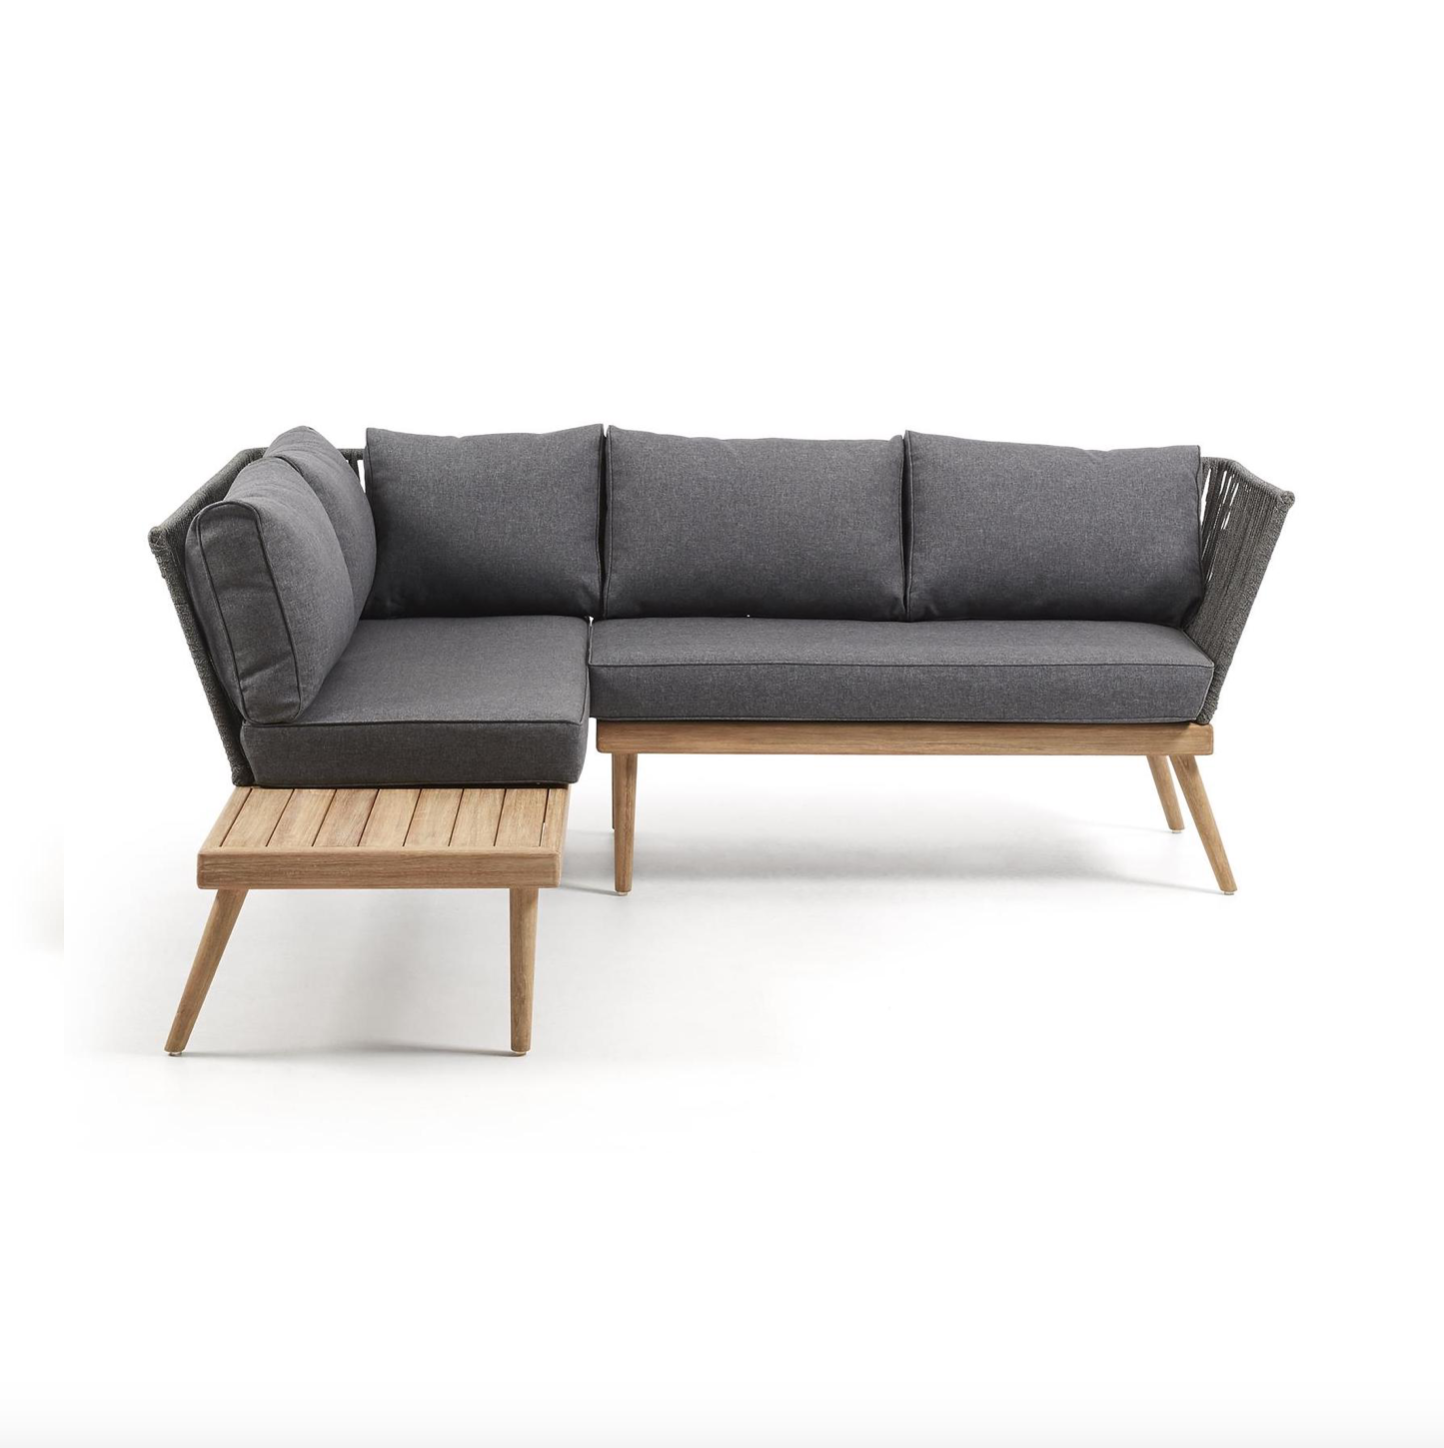 Lewis Modular Patio Sofa